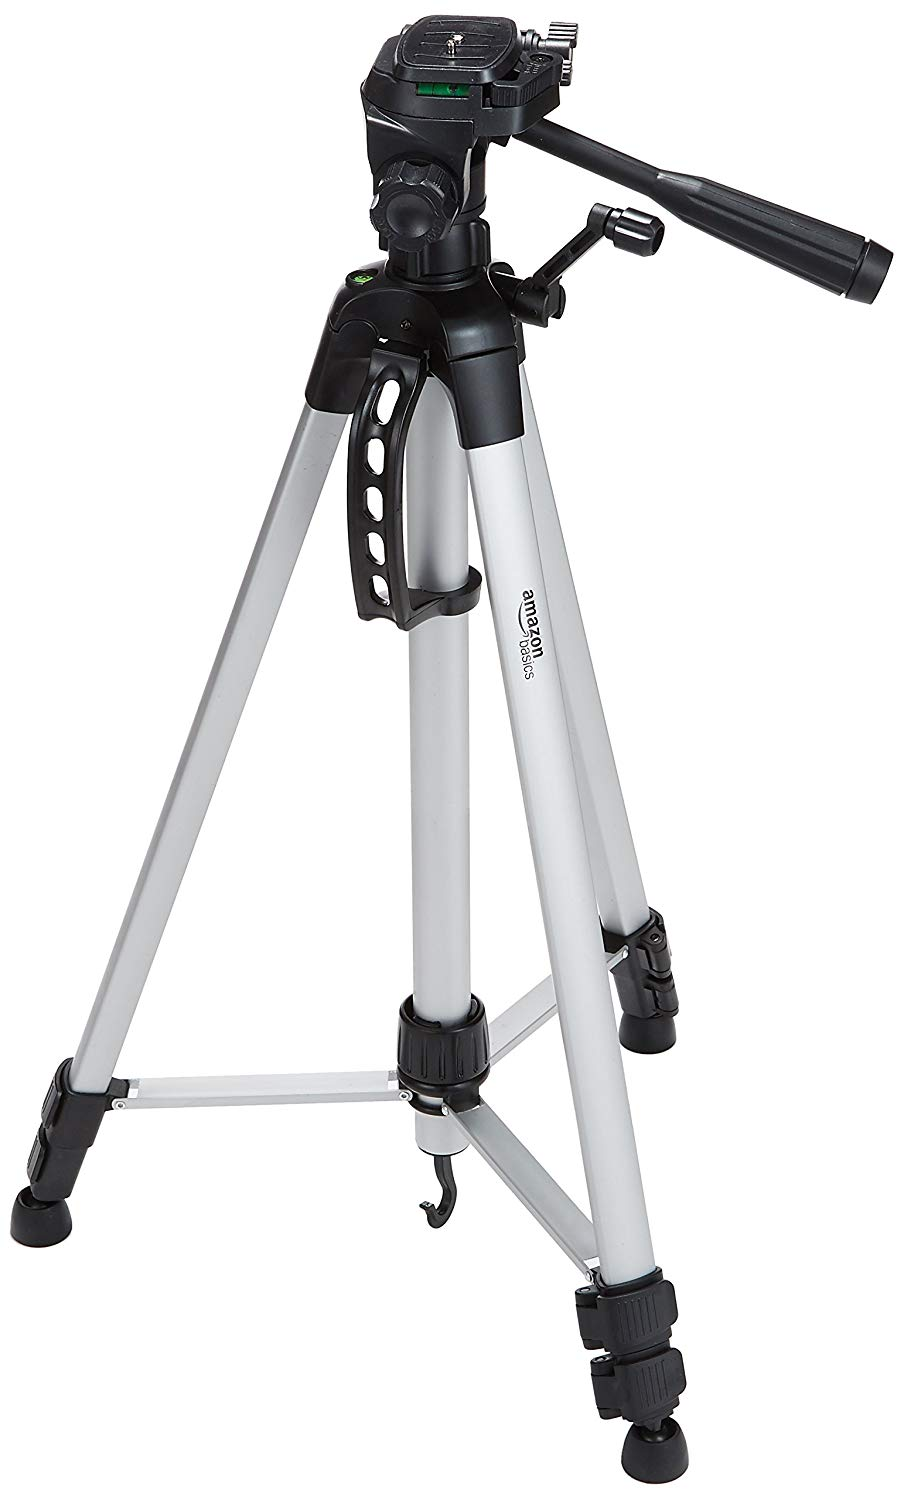 Amazon Basics 60-inch Tripod